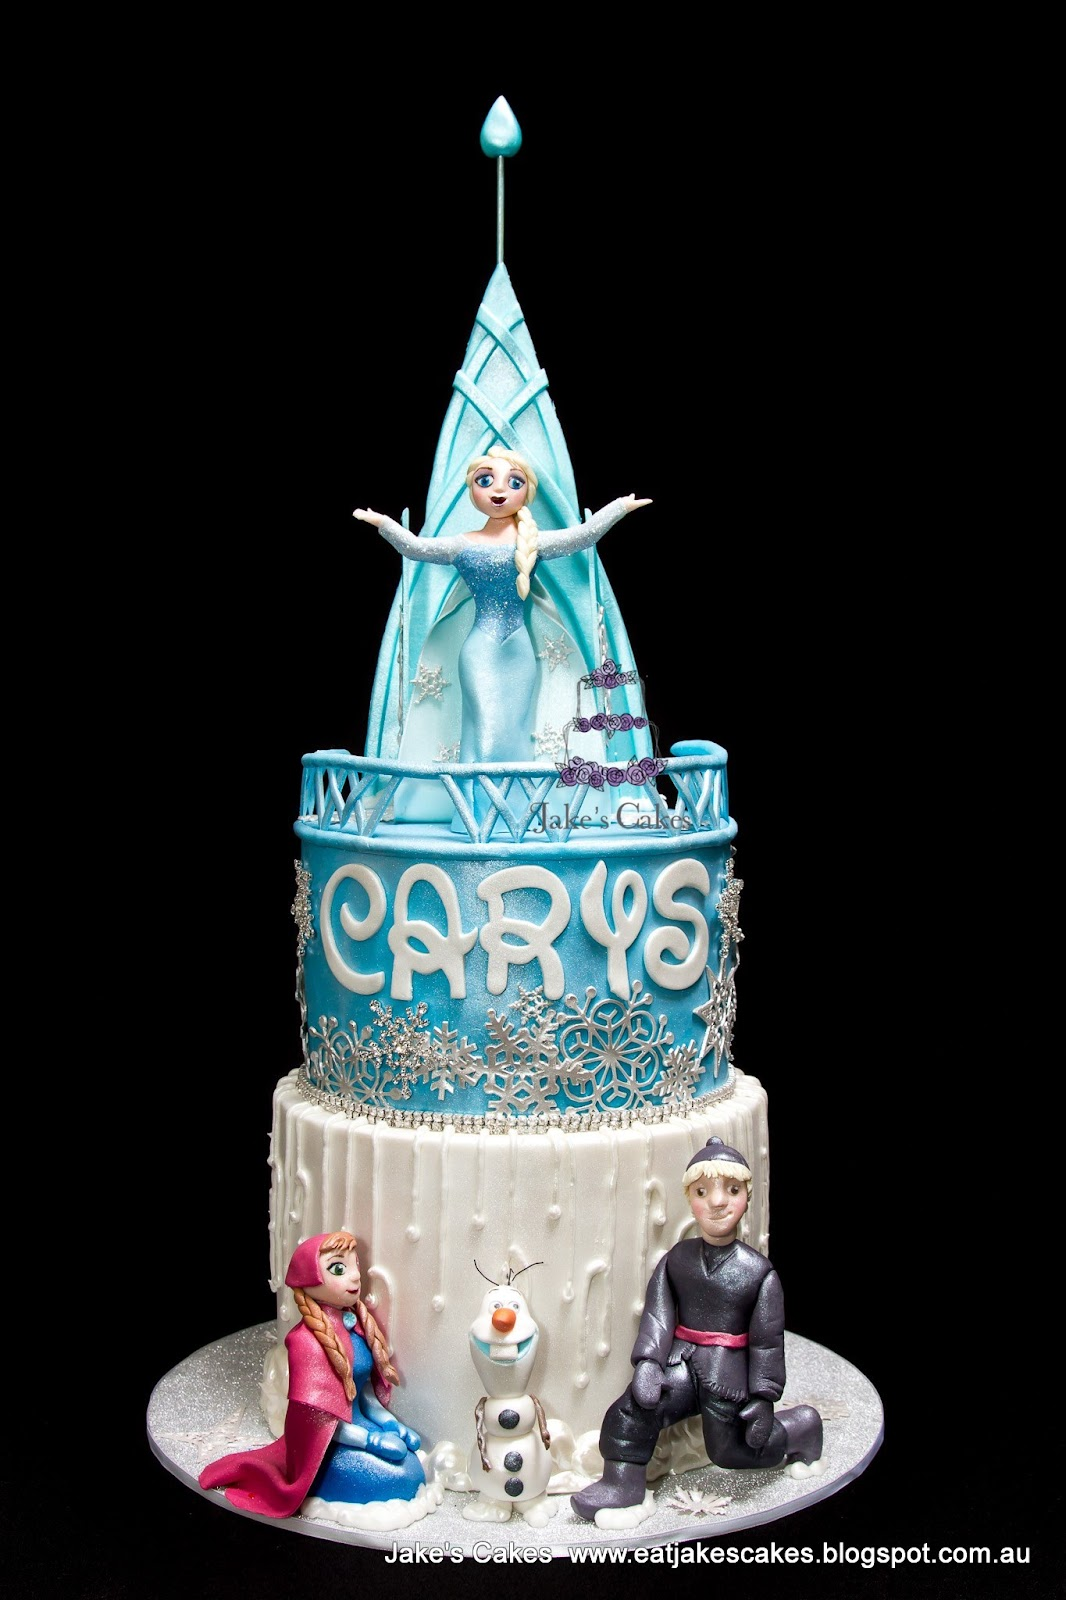 Jakes Cakes: My Daughters Frozen 4th Birthday Cake